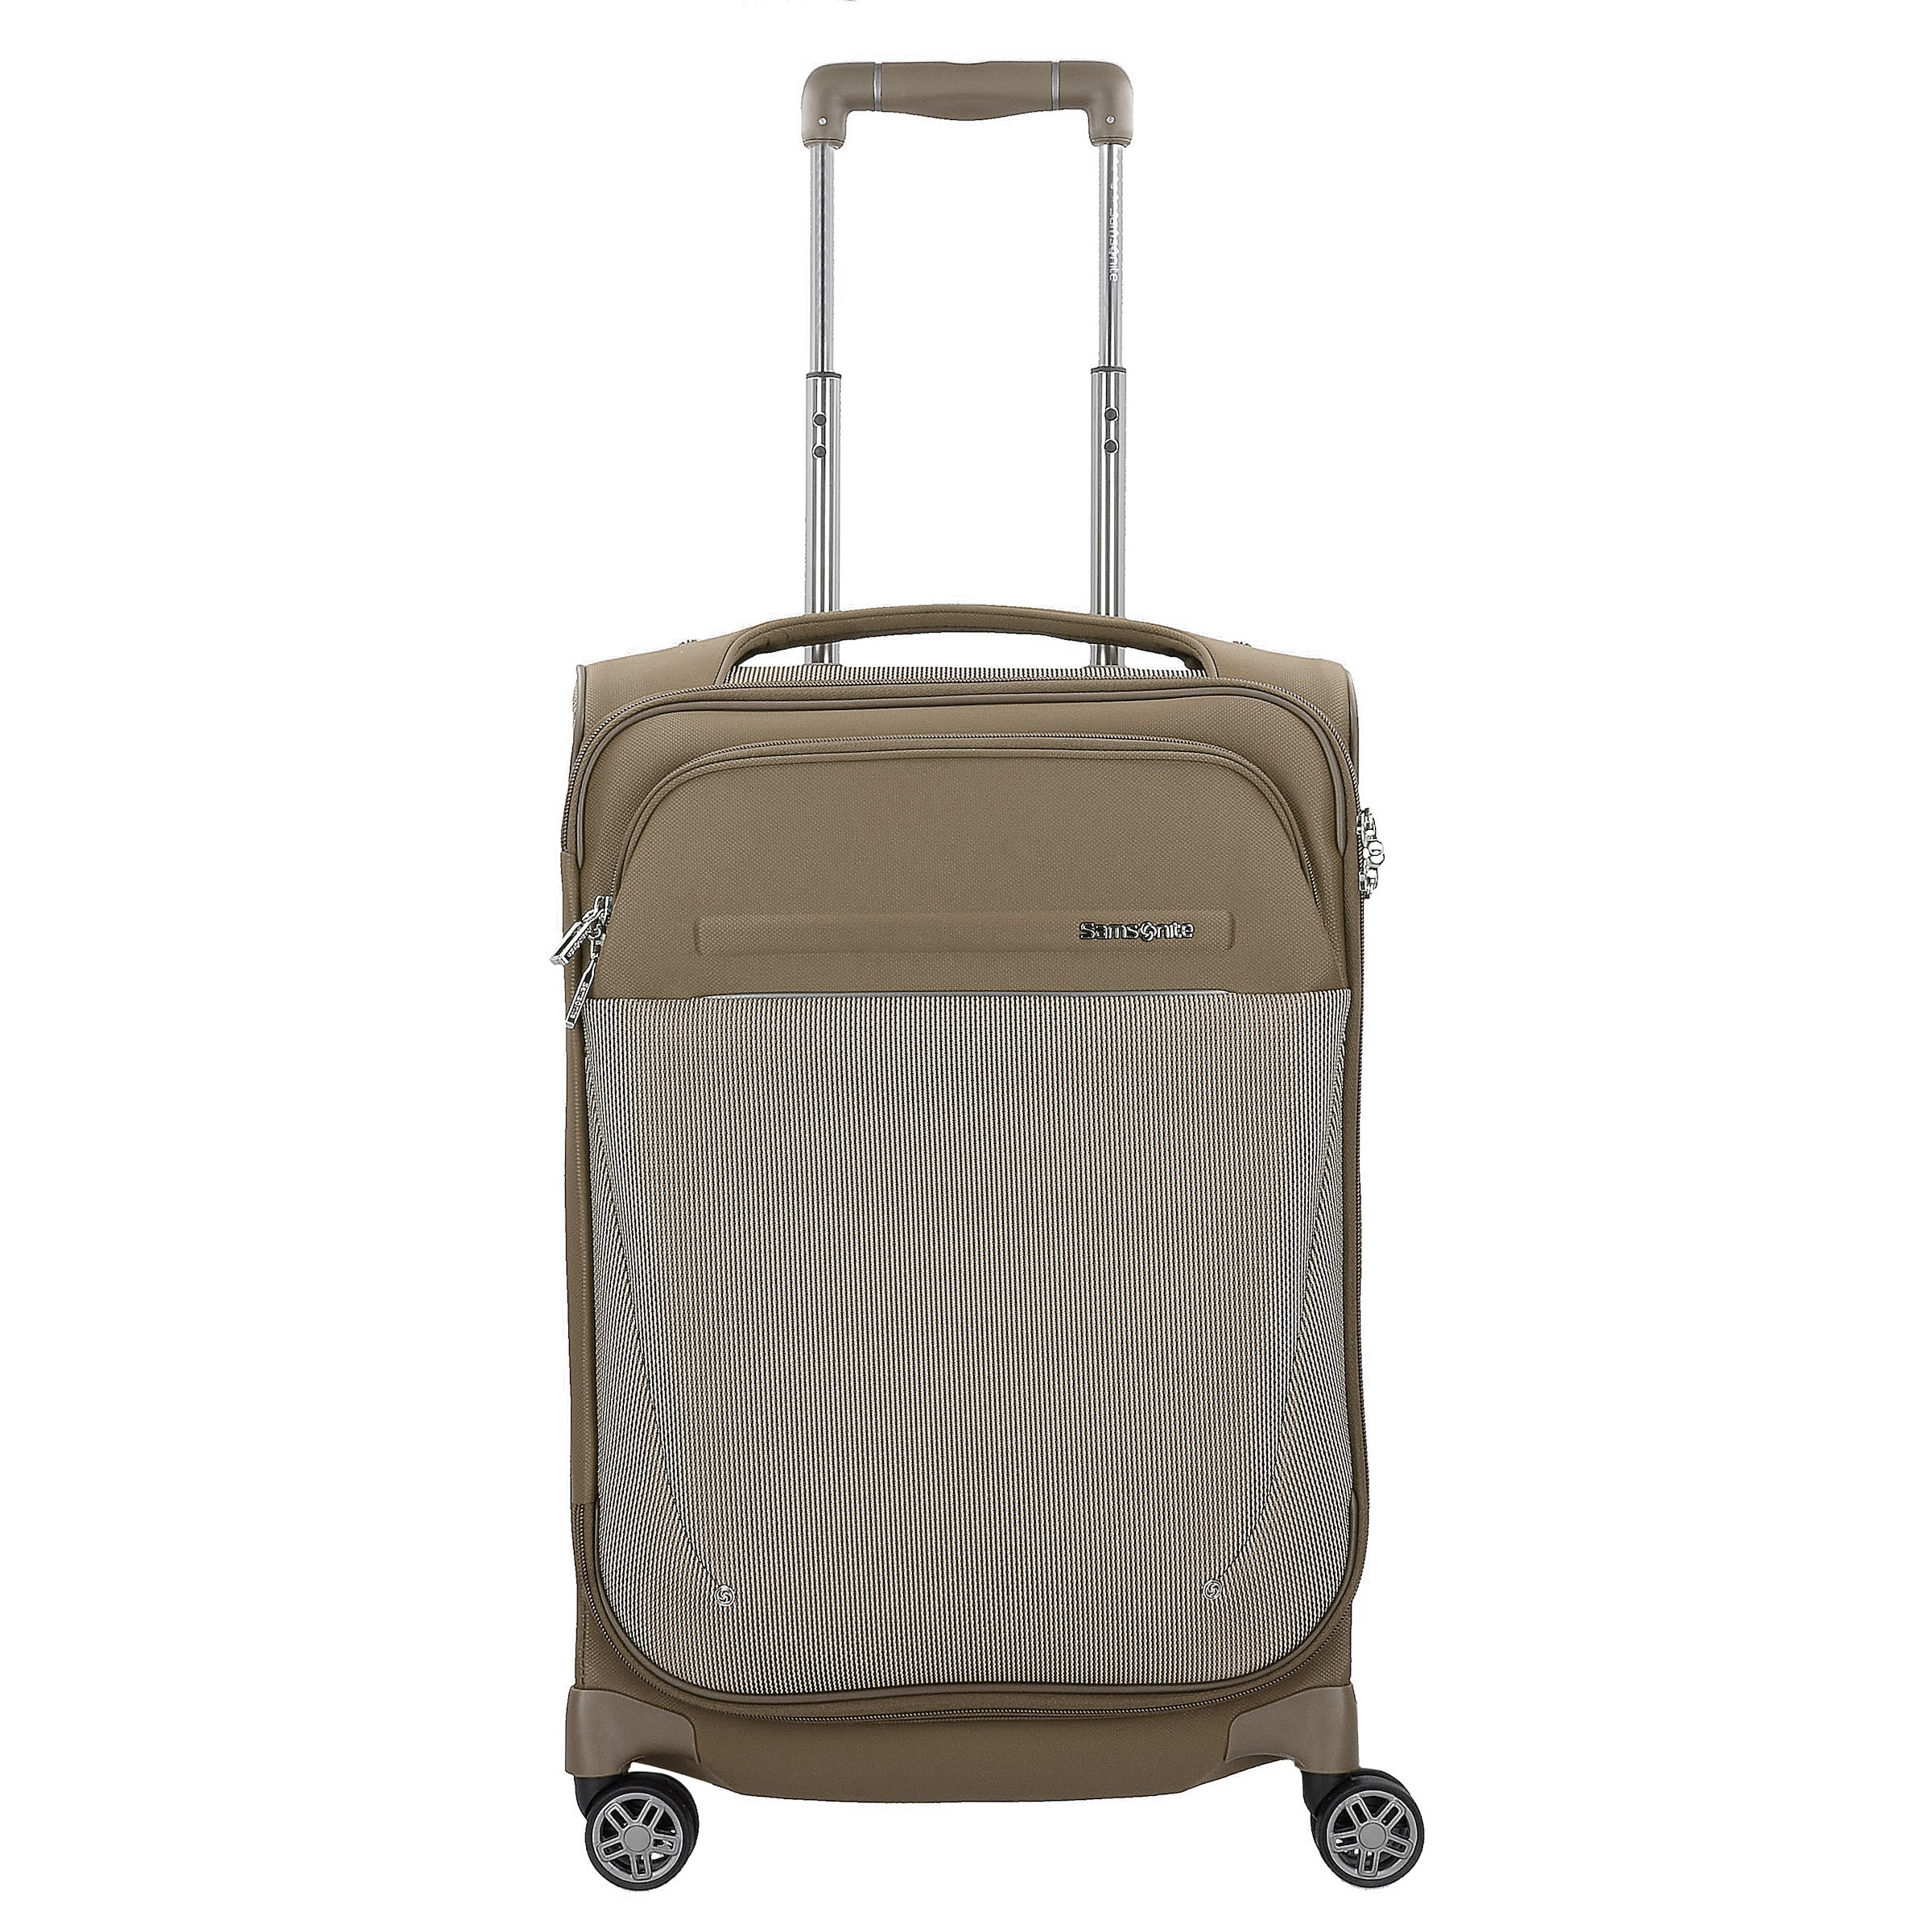 In Kabinentrolley Kabinentrolley Samsonite Samsonite Kabinentrolley Samsonite Braun In Braun rtdBsCxhQ